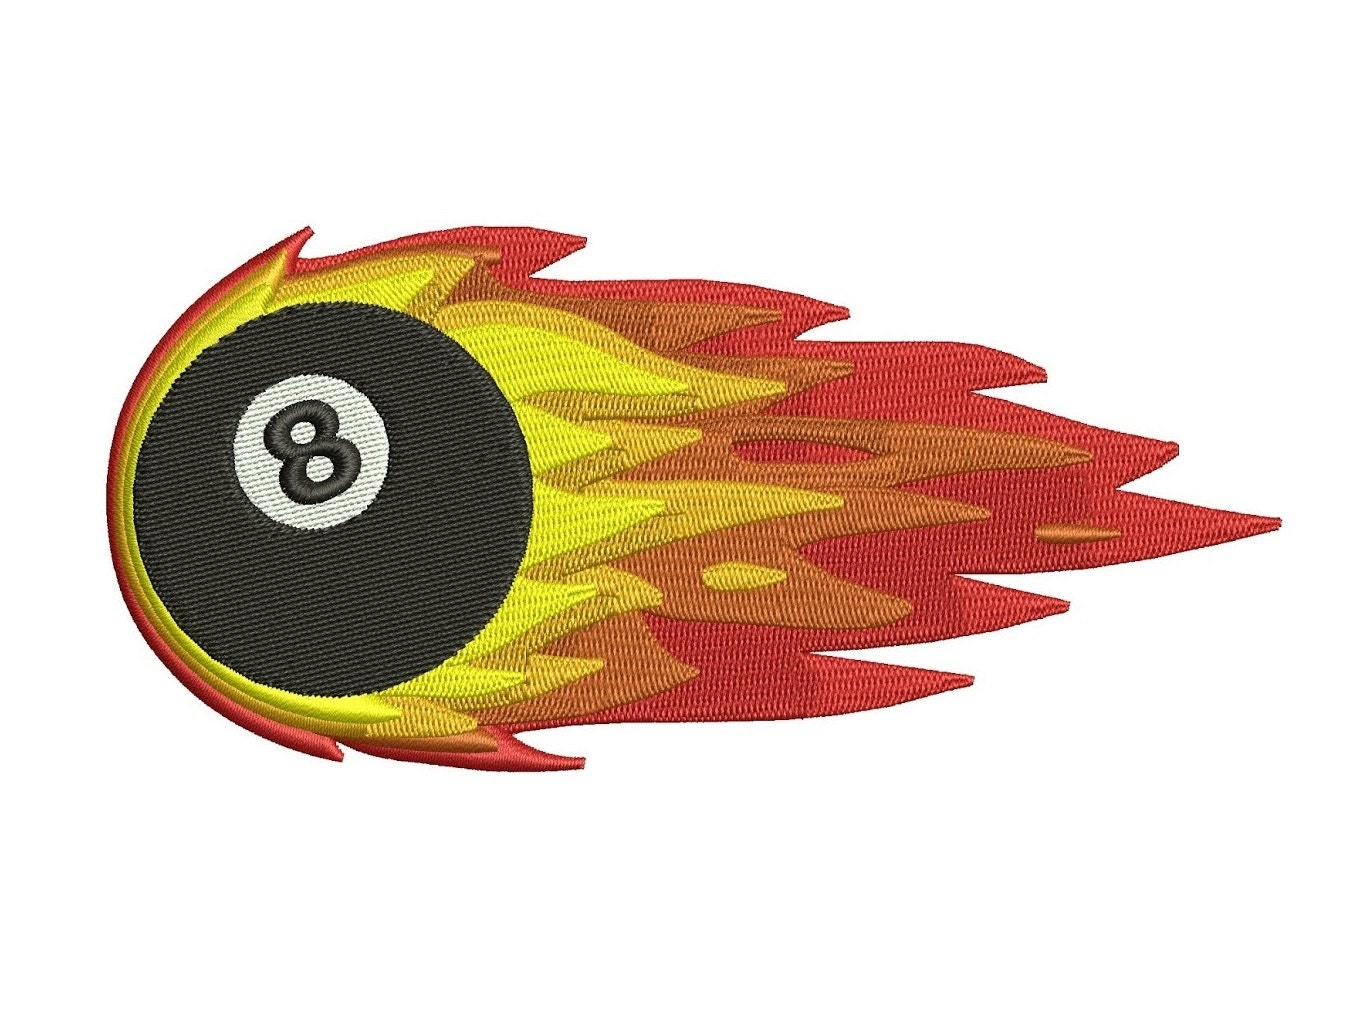 Billiard (Pool) 8 (Eight) Ball with Flames Machine Embroidery Digitized Design Filled Pattern - Instant Download - 4x4 , 5x7, 6x10 hoops for sale